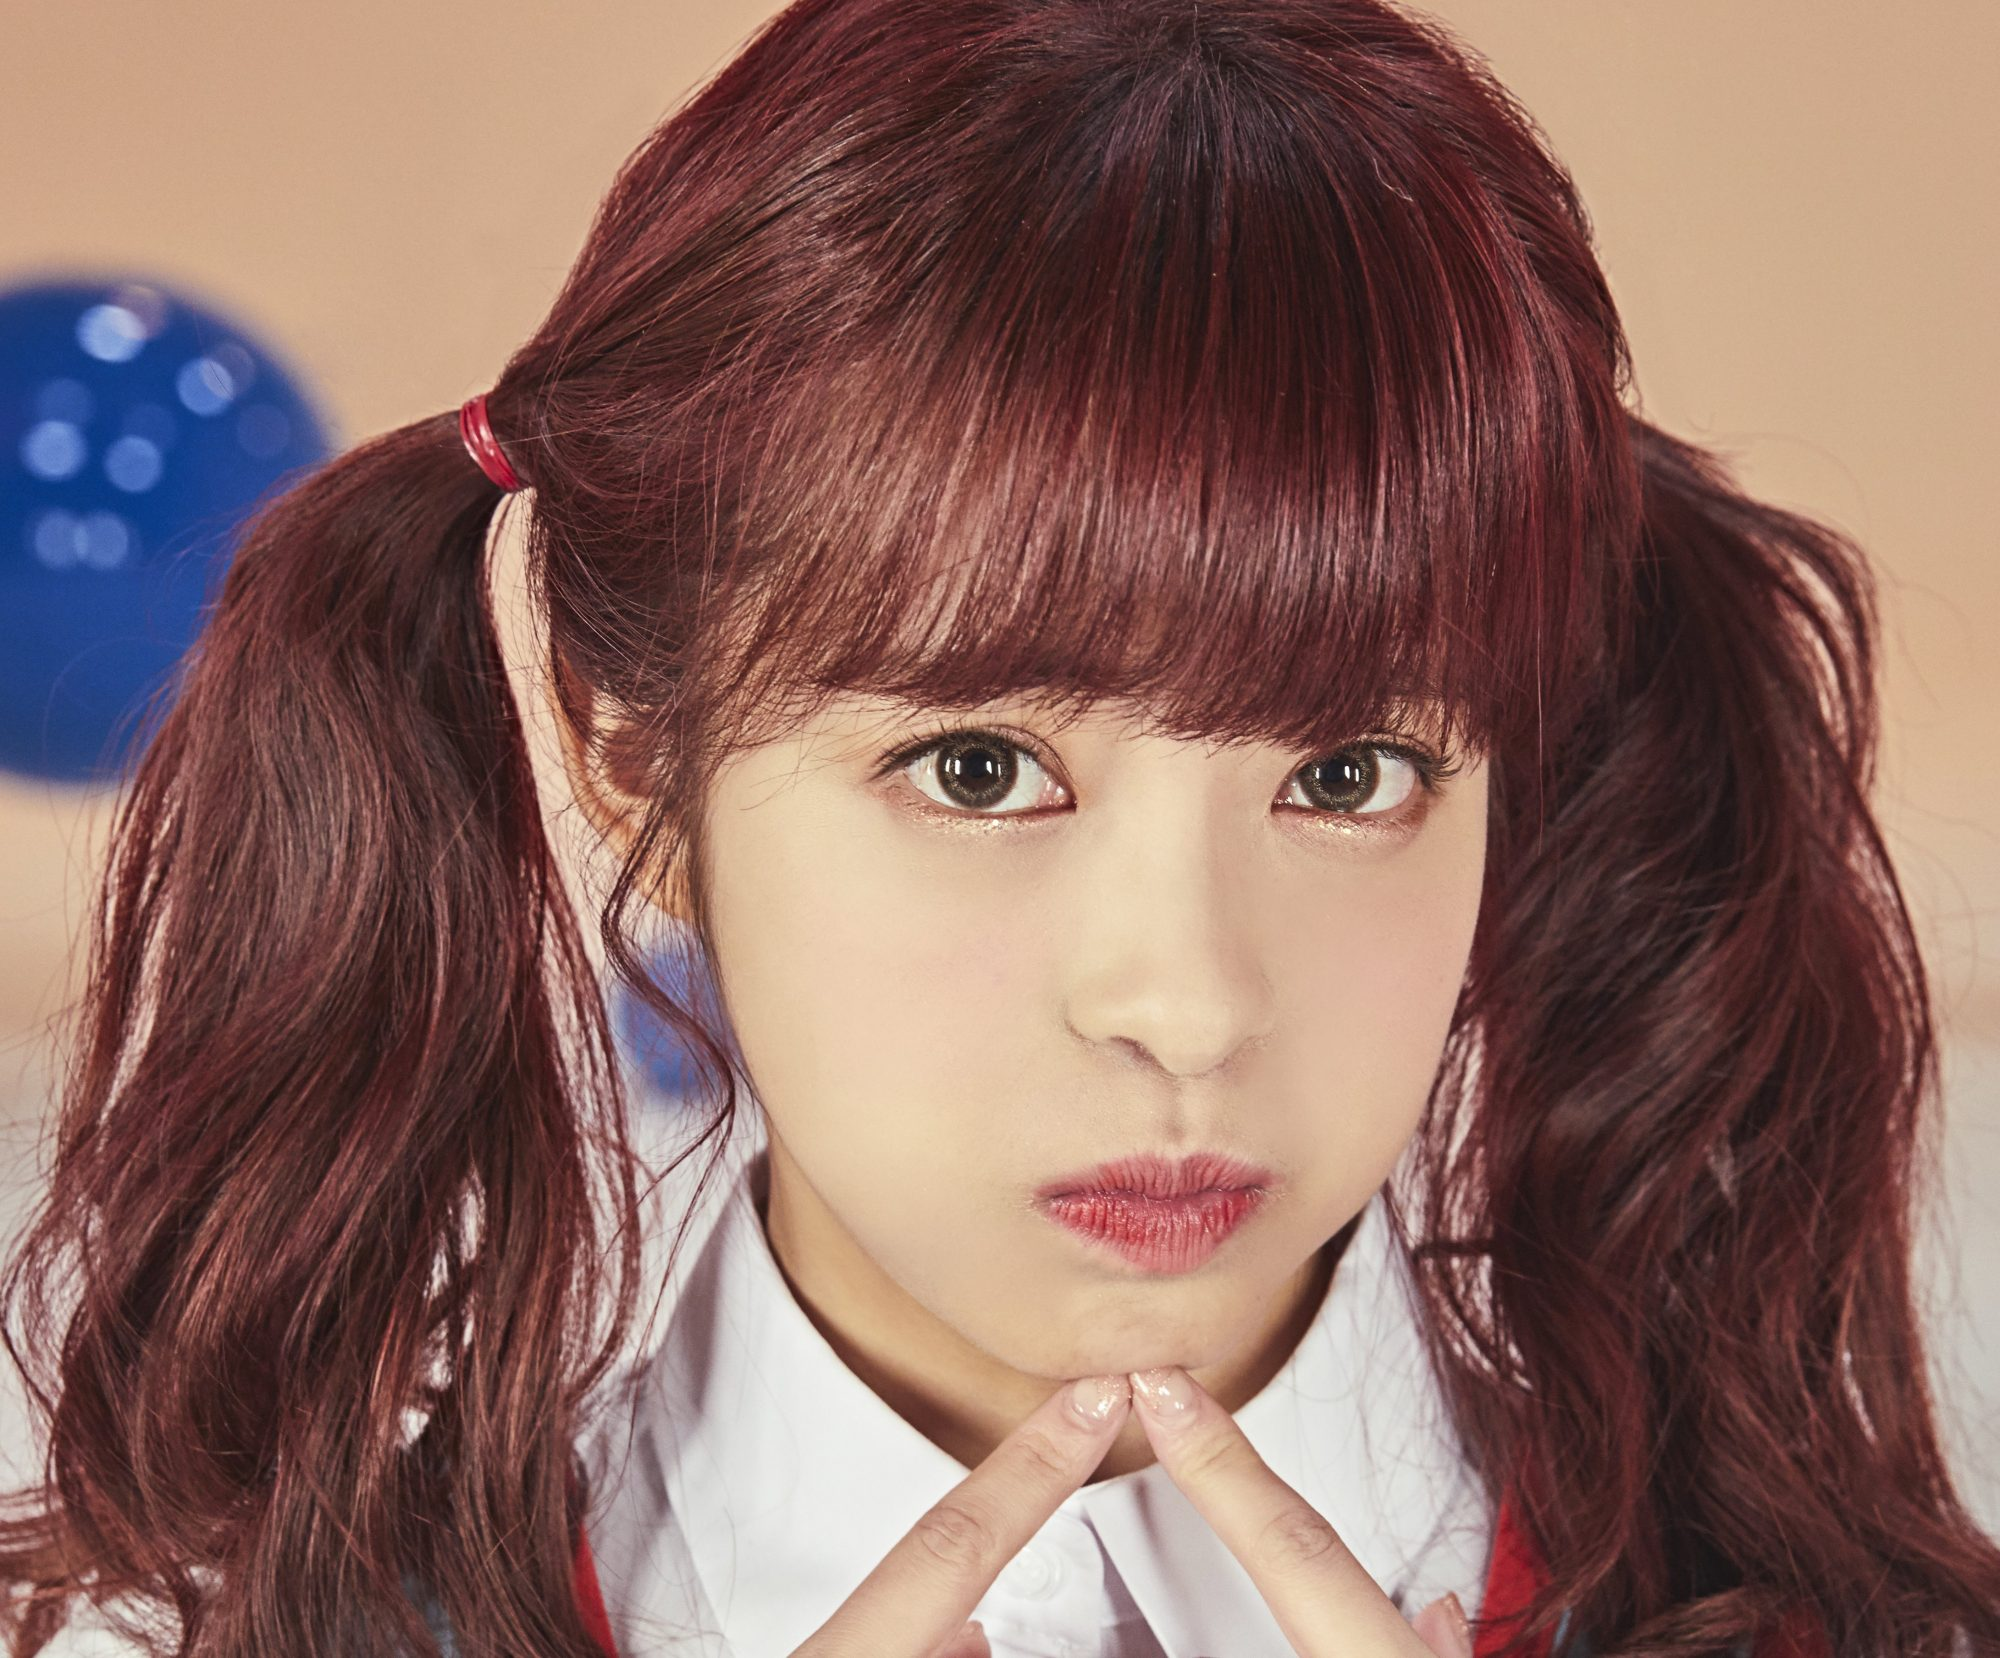 Honey Popcorn Moko Profile